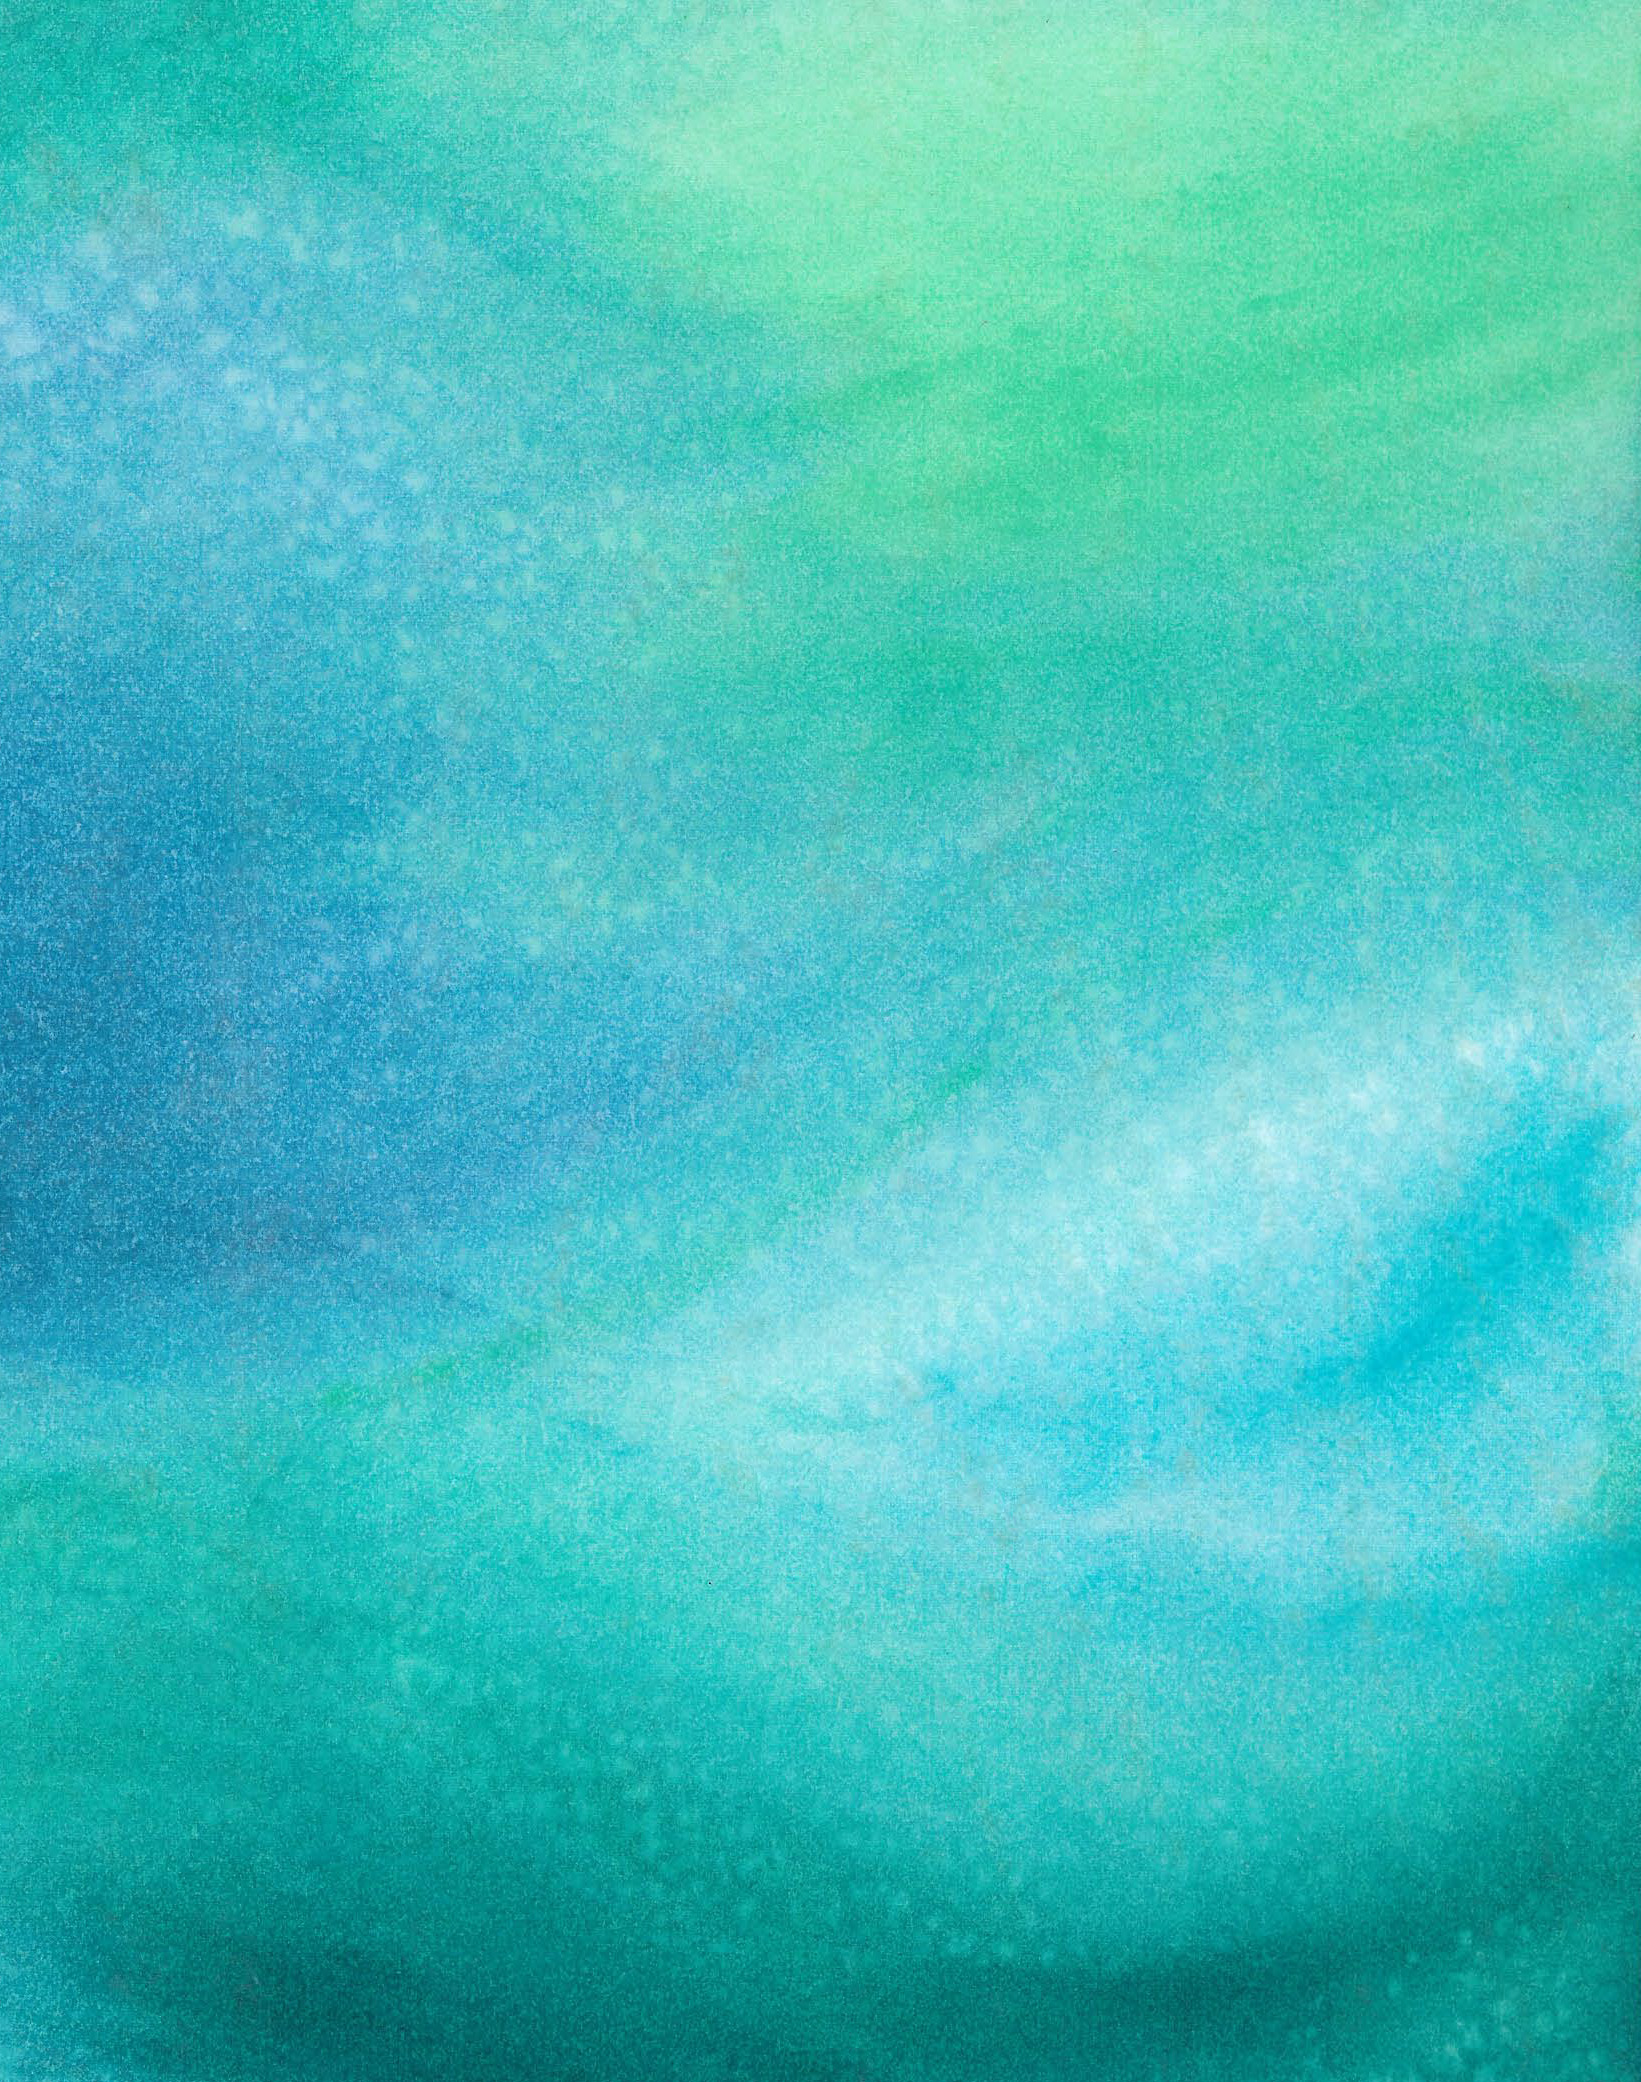 Seafoam - Watercolor - 8 X 11 - Sold - Print Available